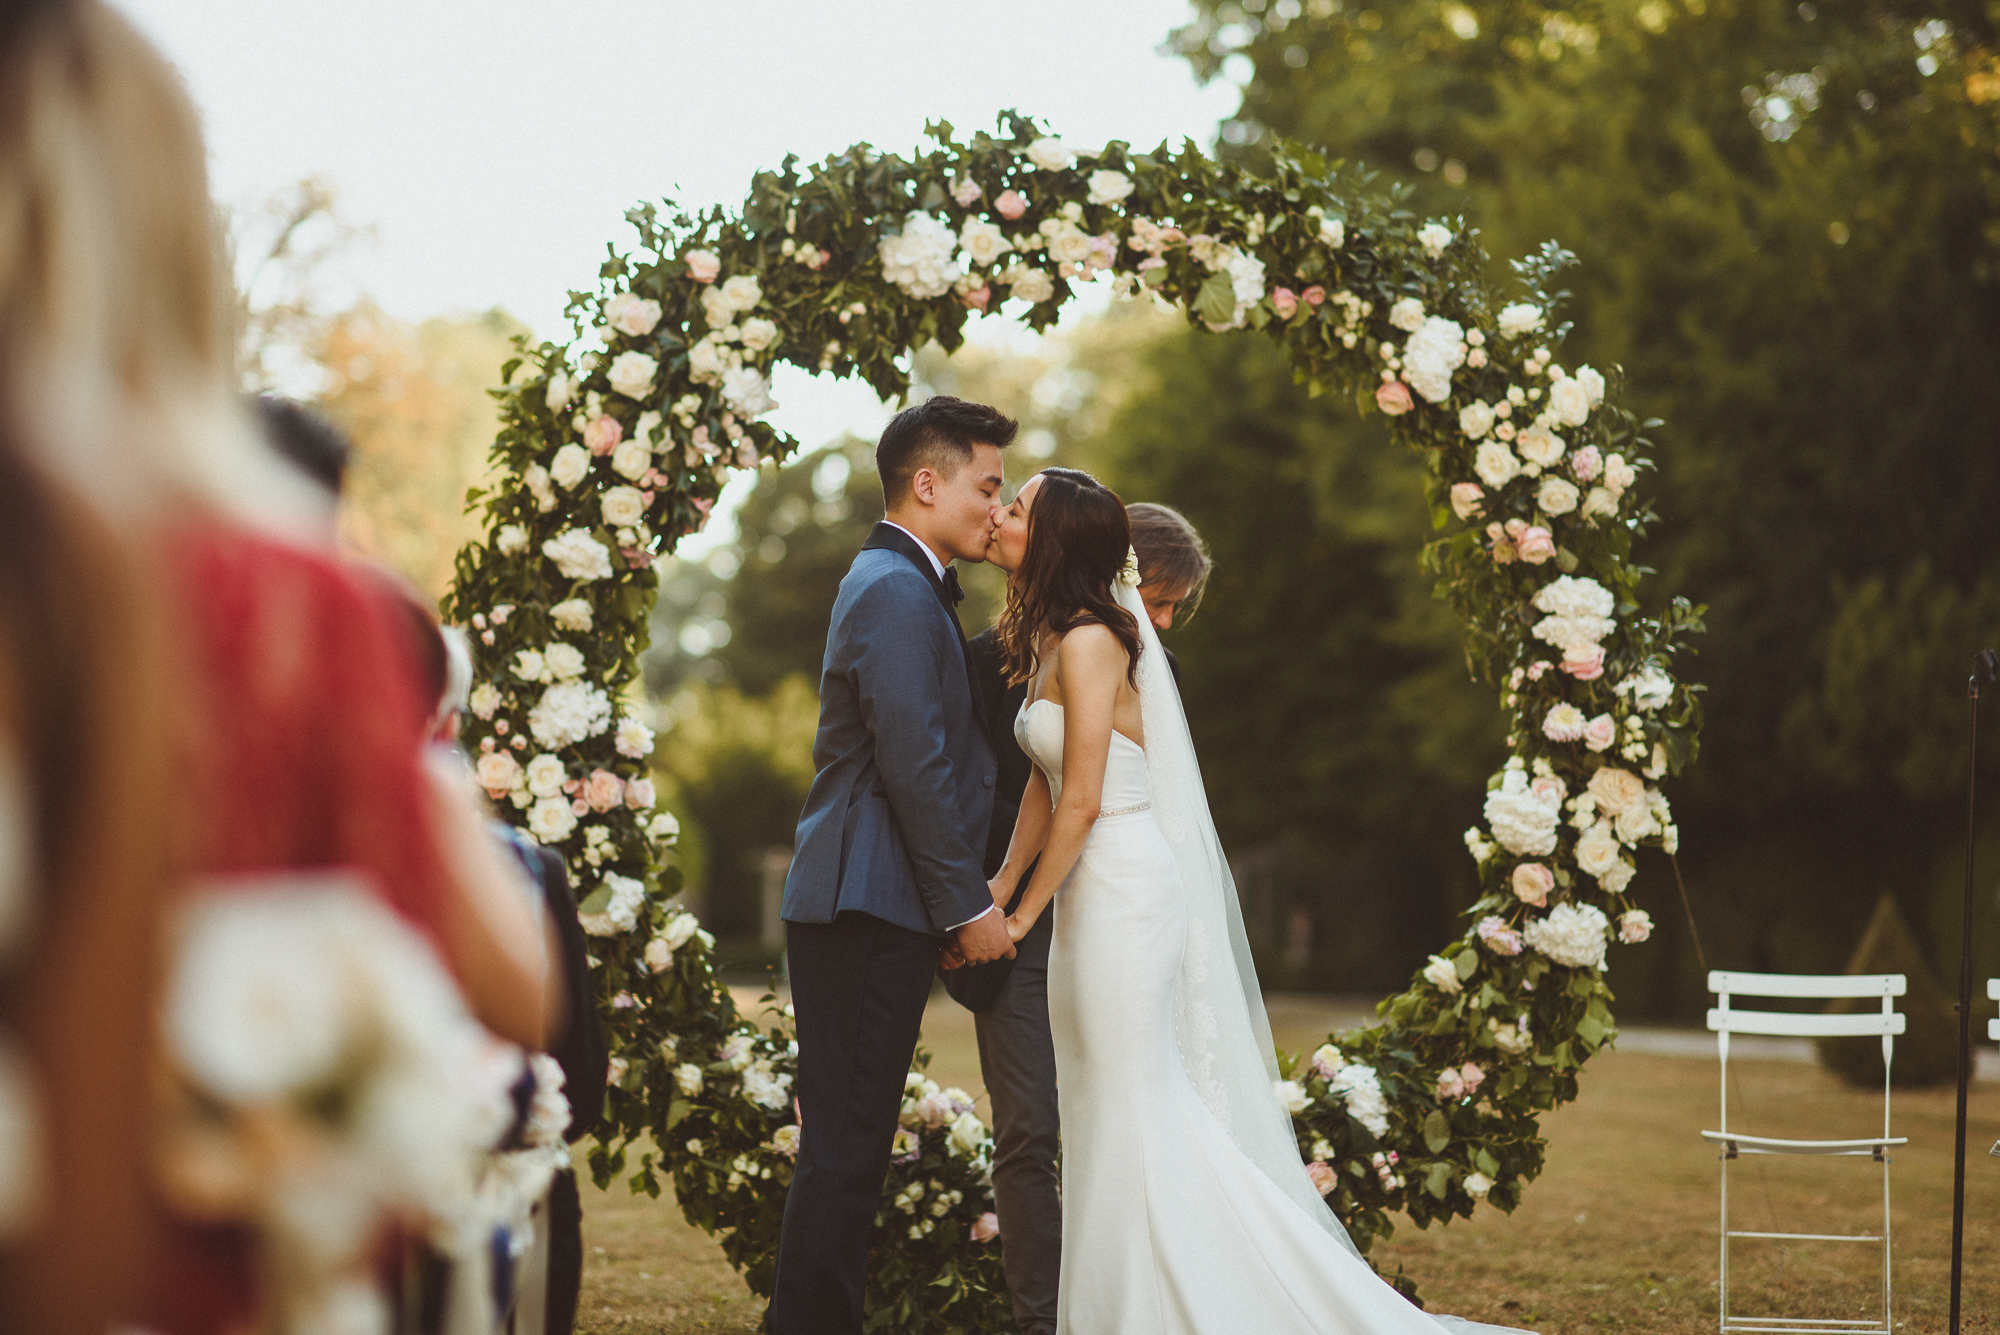 An Enzoani Bride + Her Elegant, Intimate French Garden Wedding With Chinese Traditions